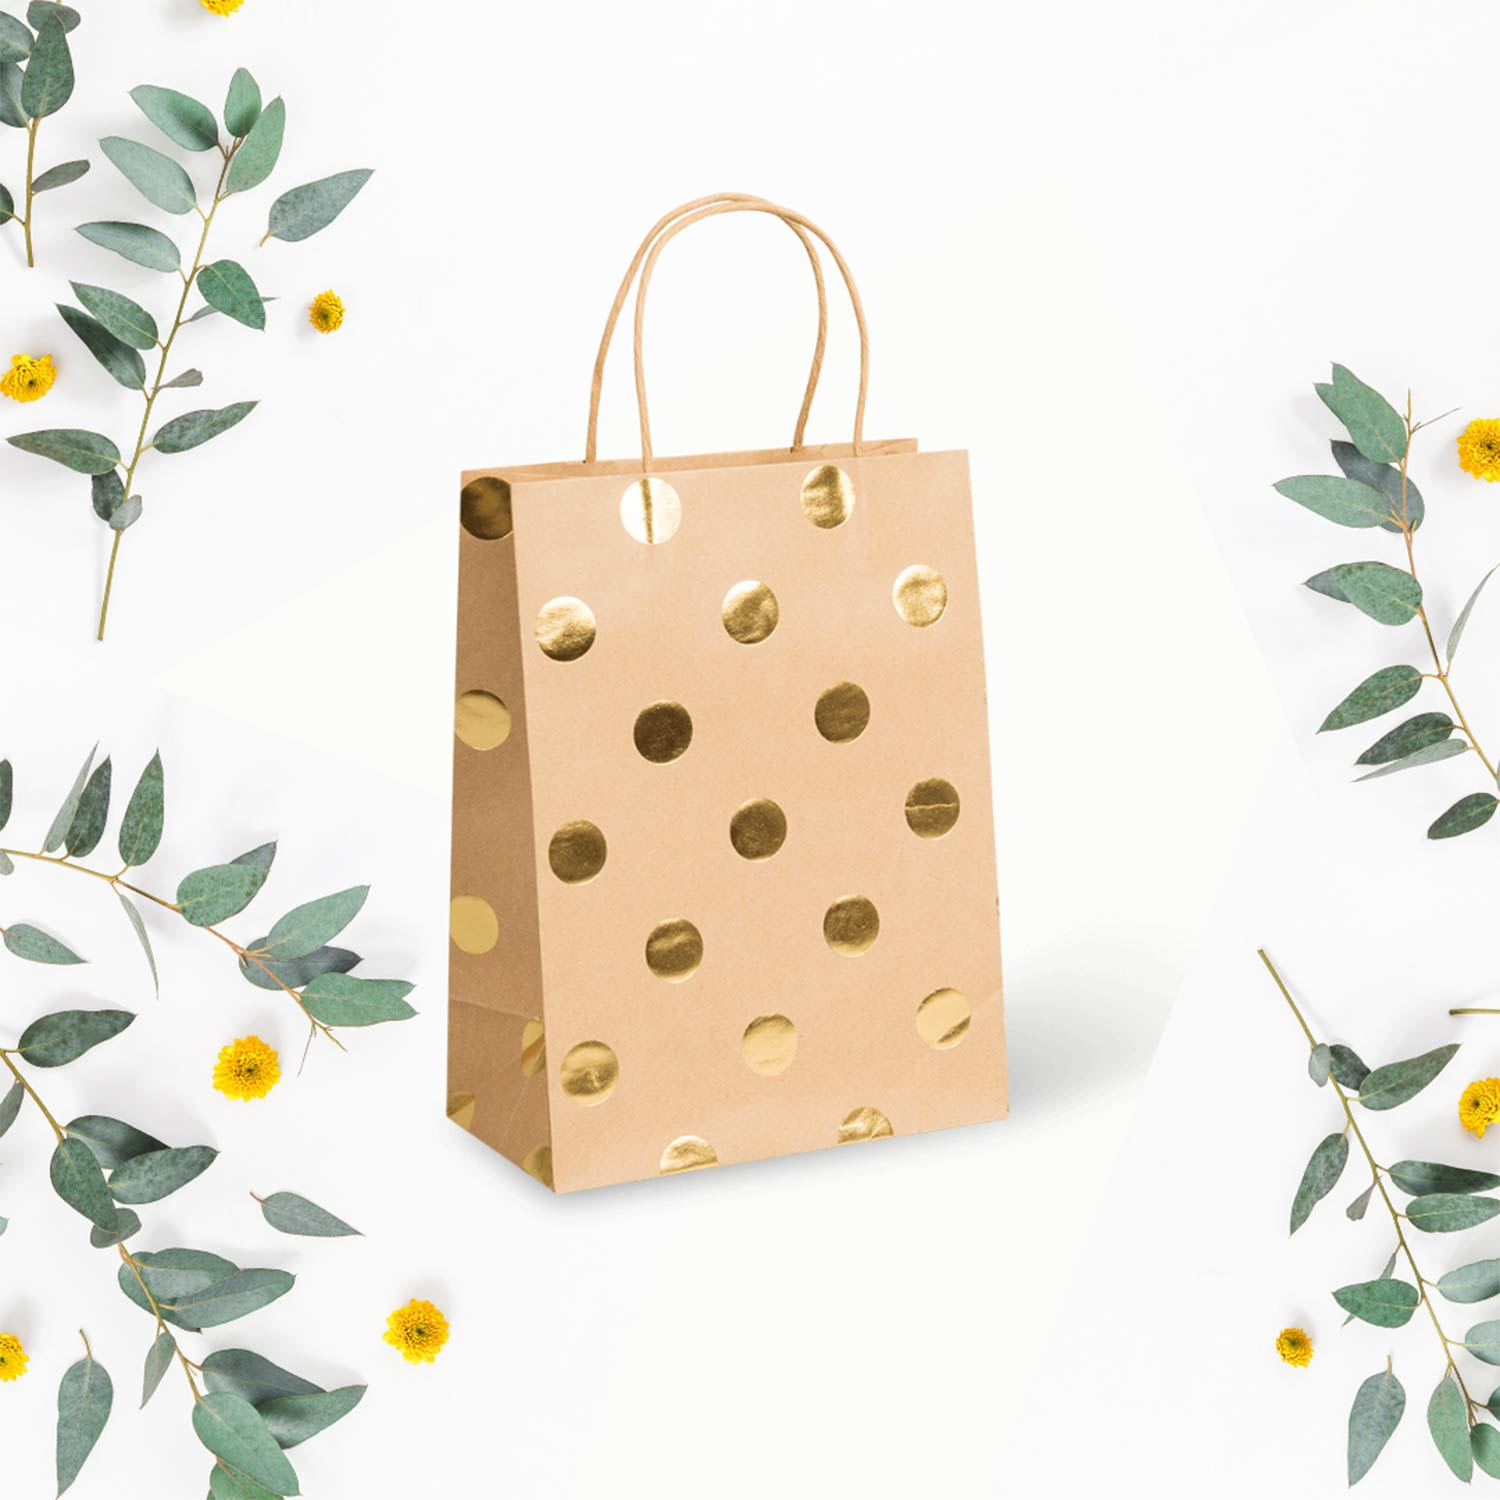 Image of the PaperPak gold spot bag - a brown kraft bag with gold spots